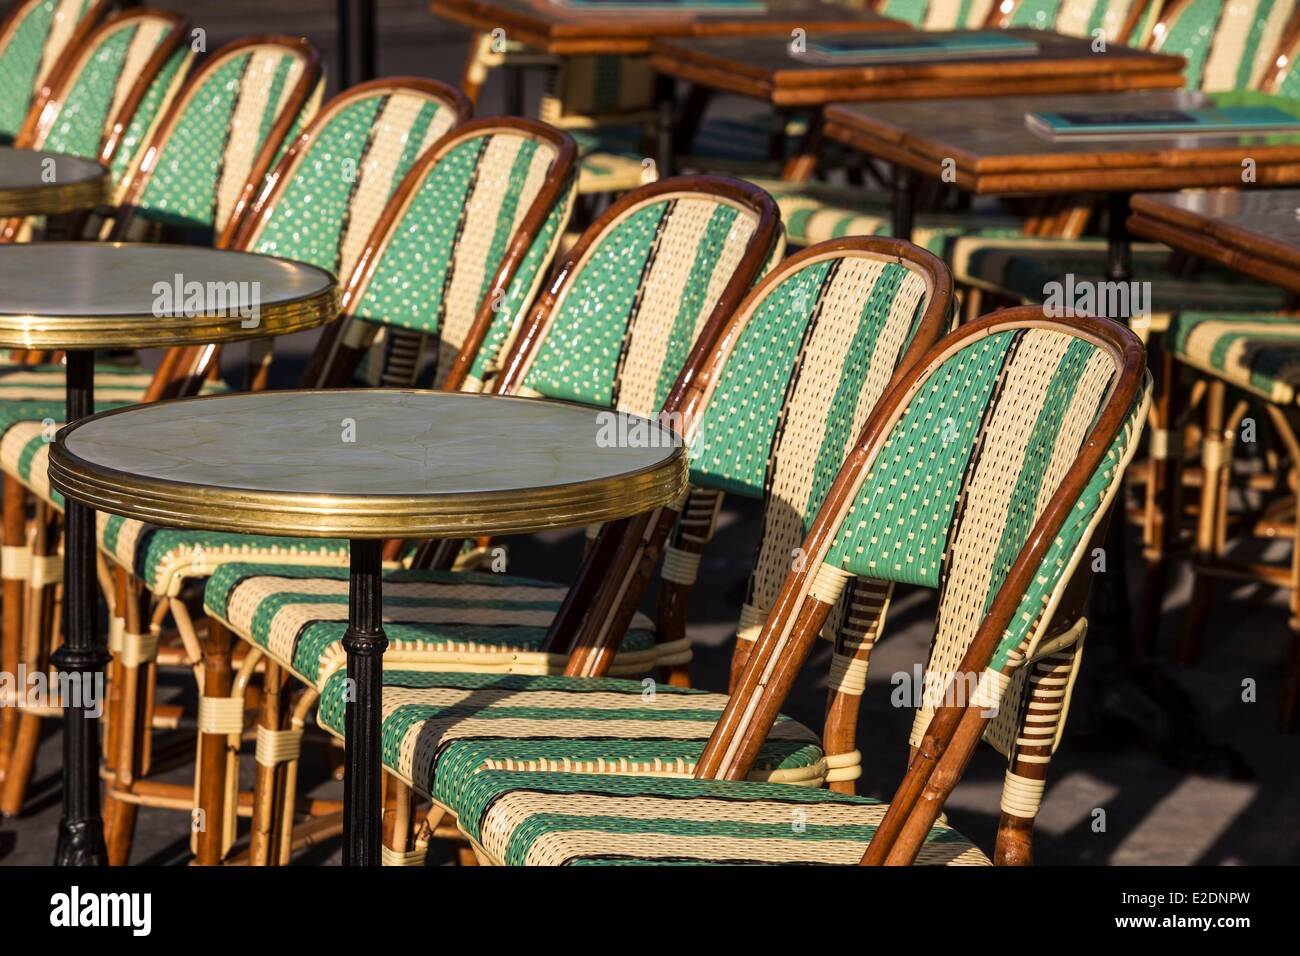 paris cafe chairs hanging chair hardware lowes bistro stock photos and images alamy